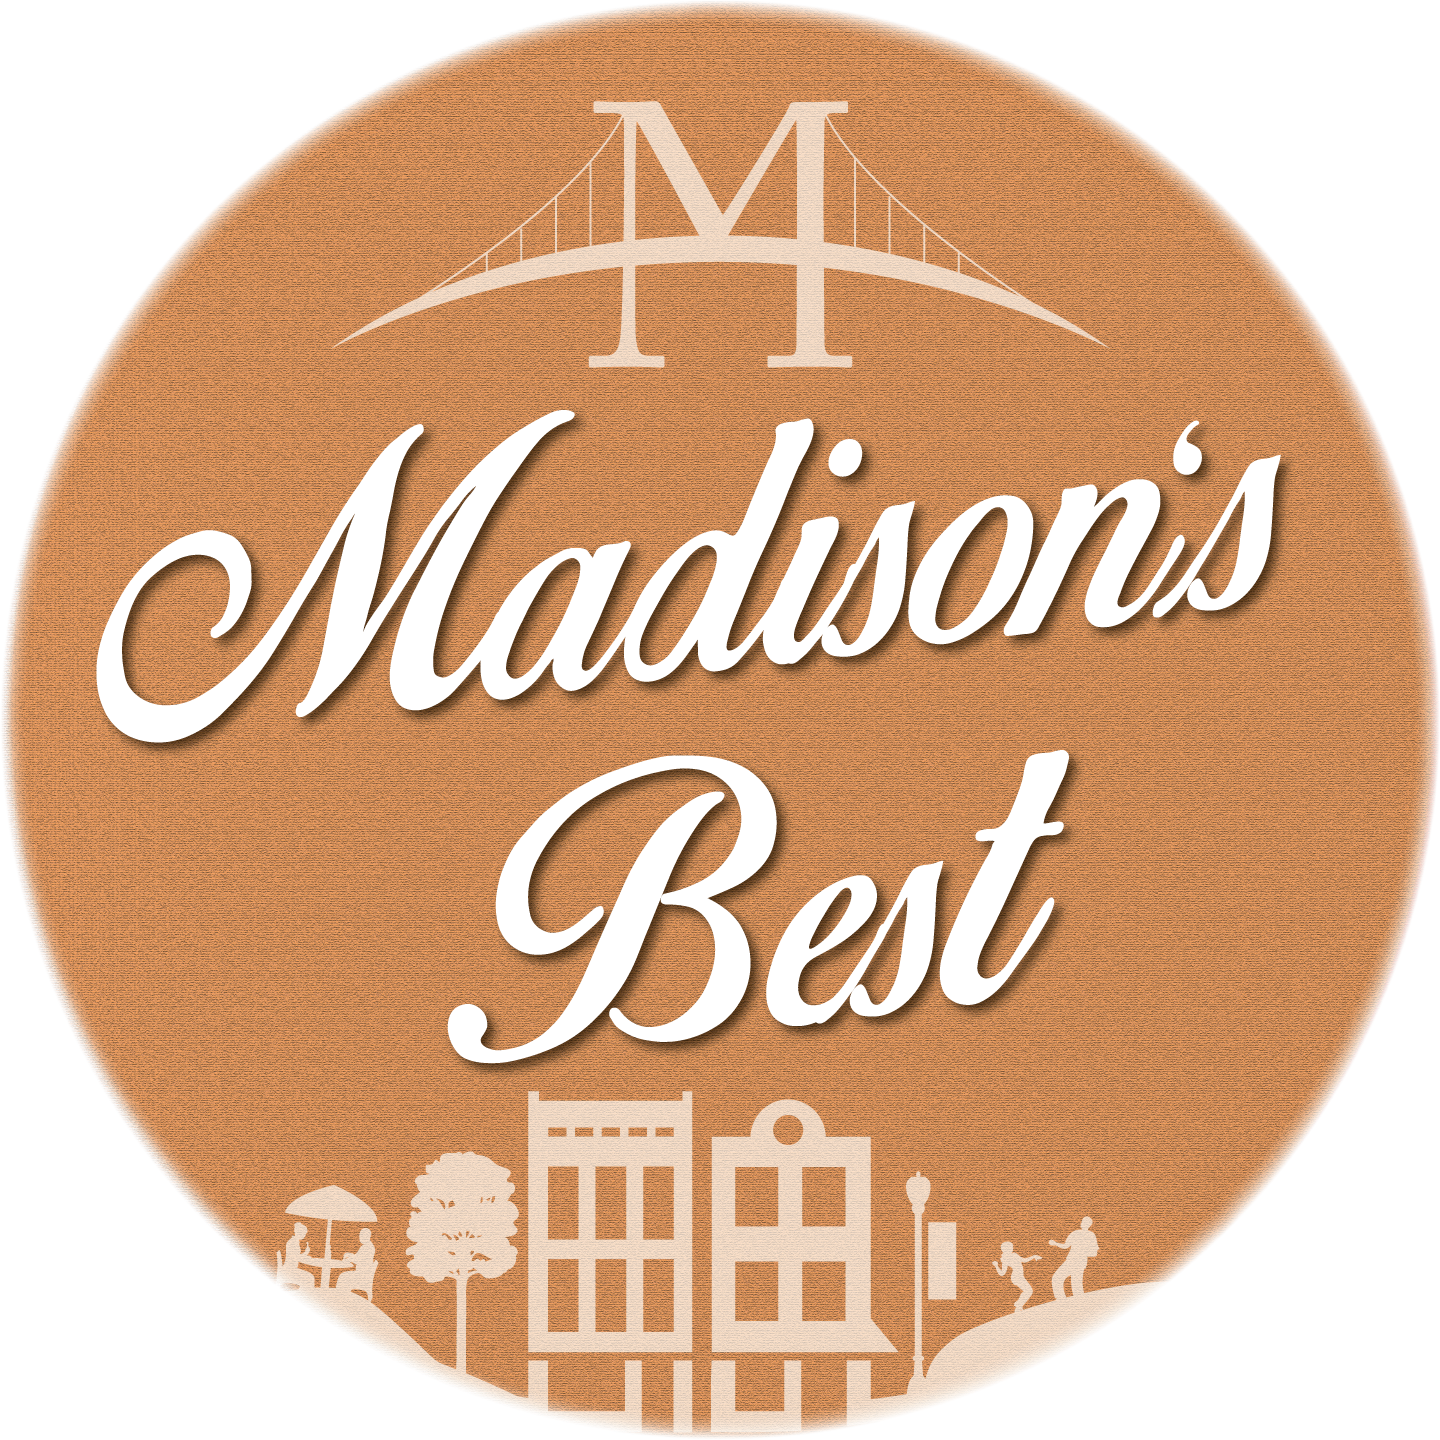 Best of Madison Indiana, Madison's Best